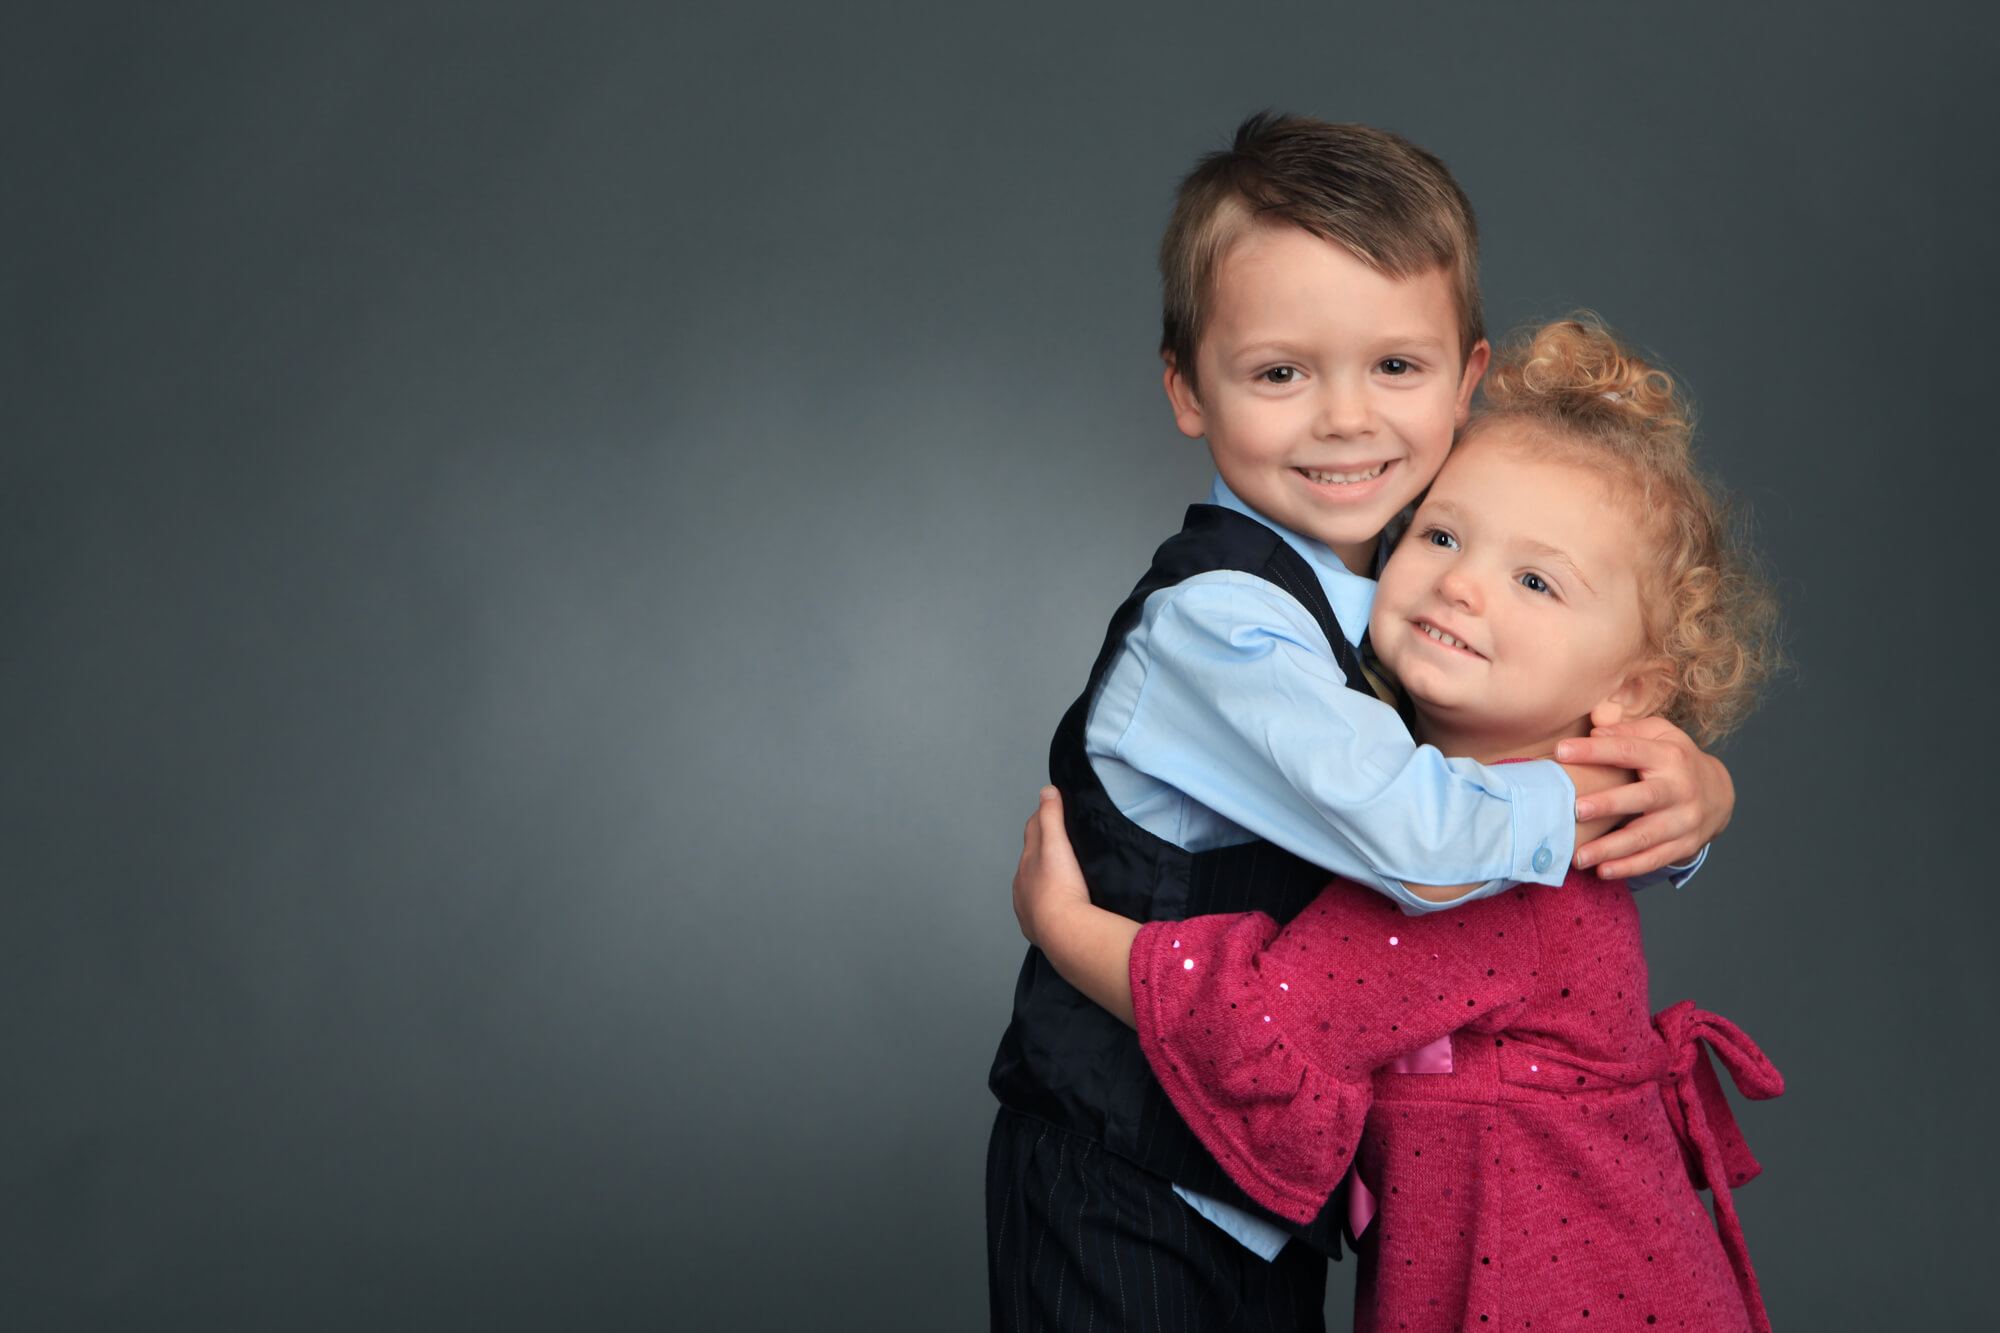 Siblings hugging during portrait session